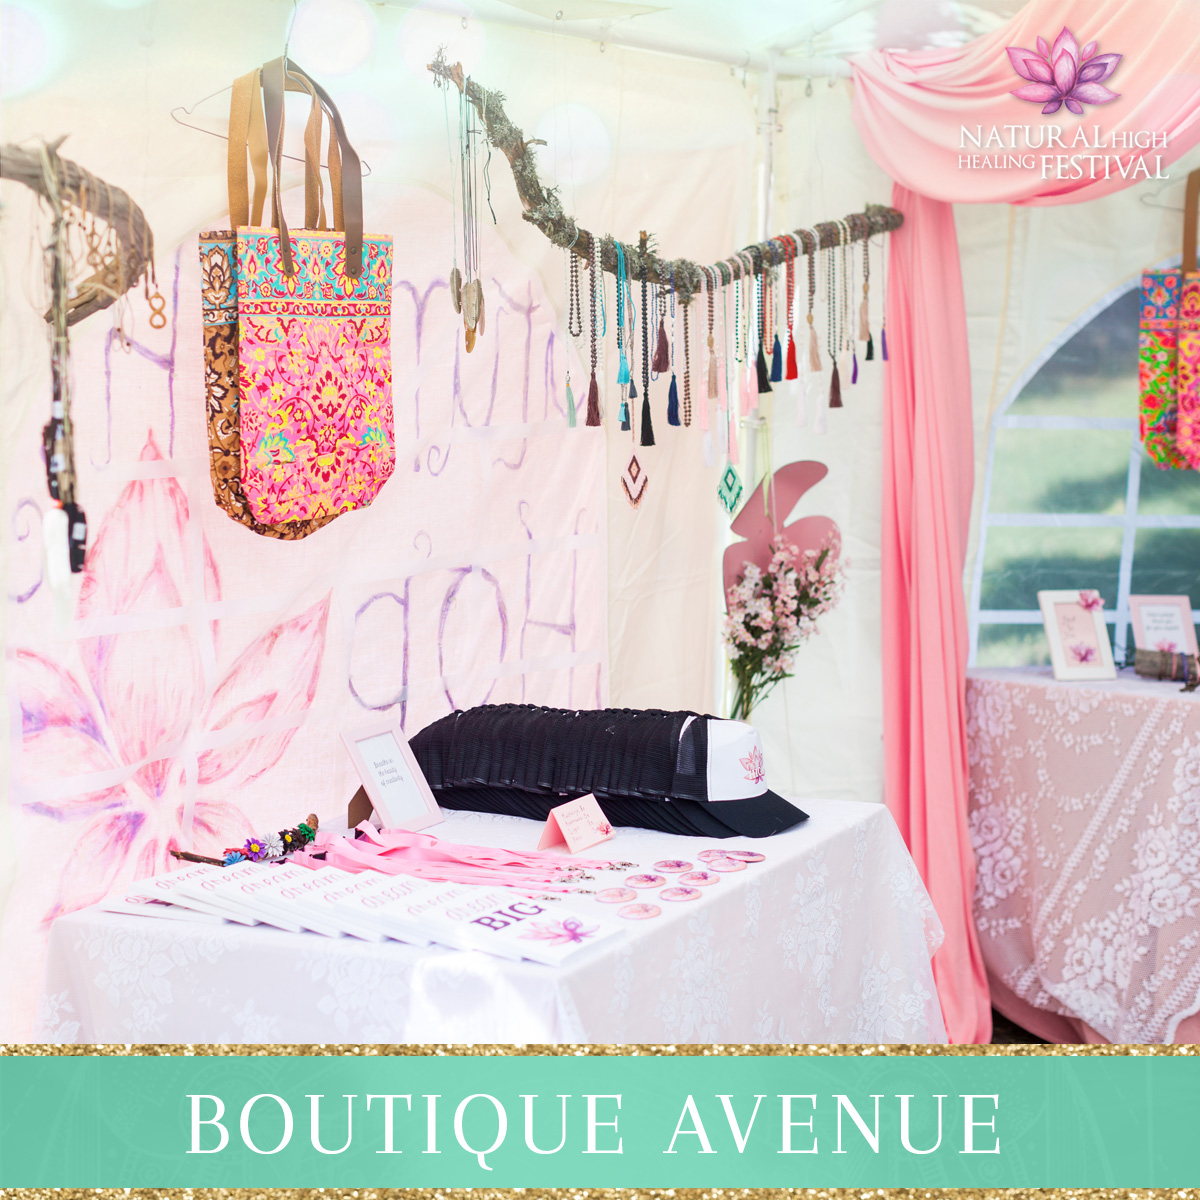 Boutique Avenue at Natural High Healing Festival in Finland